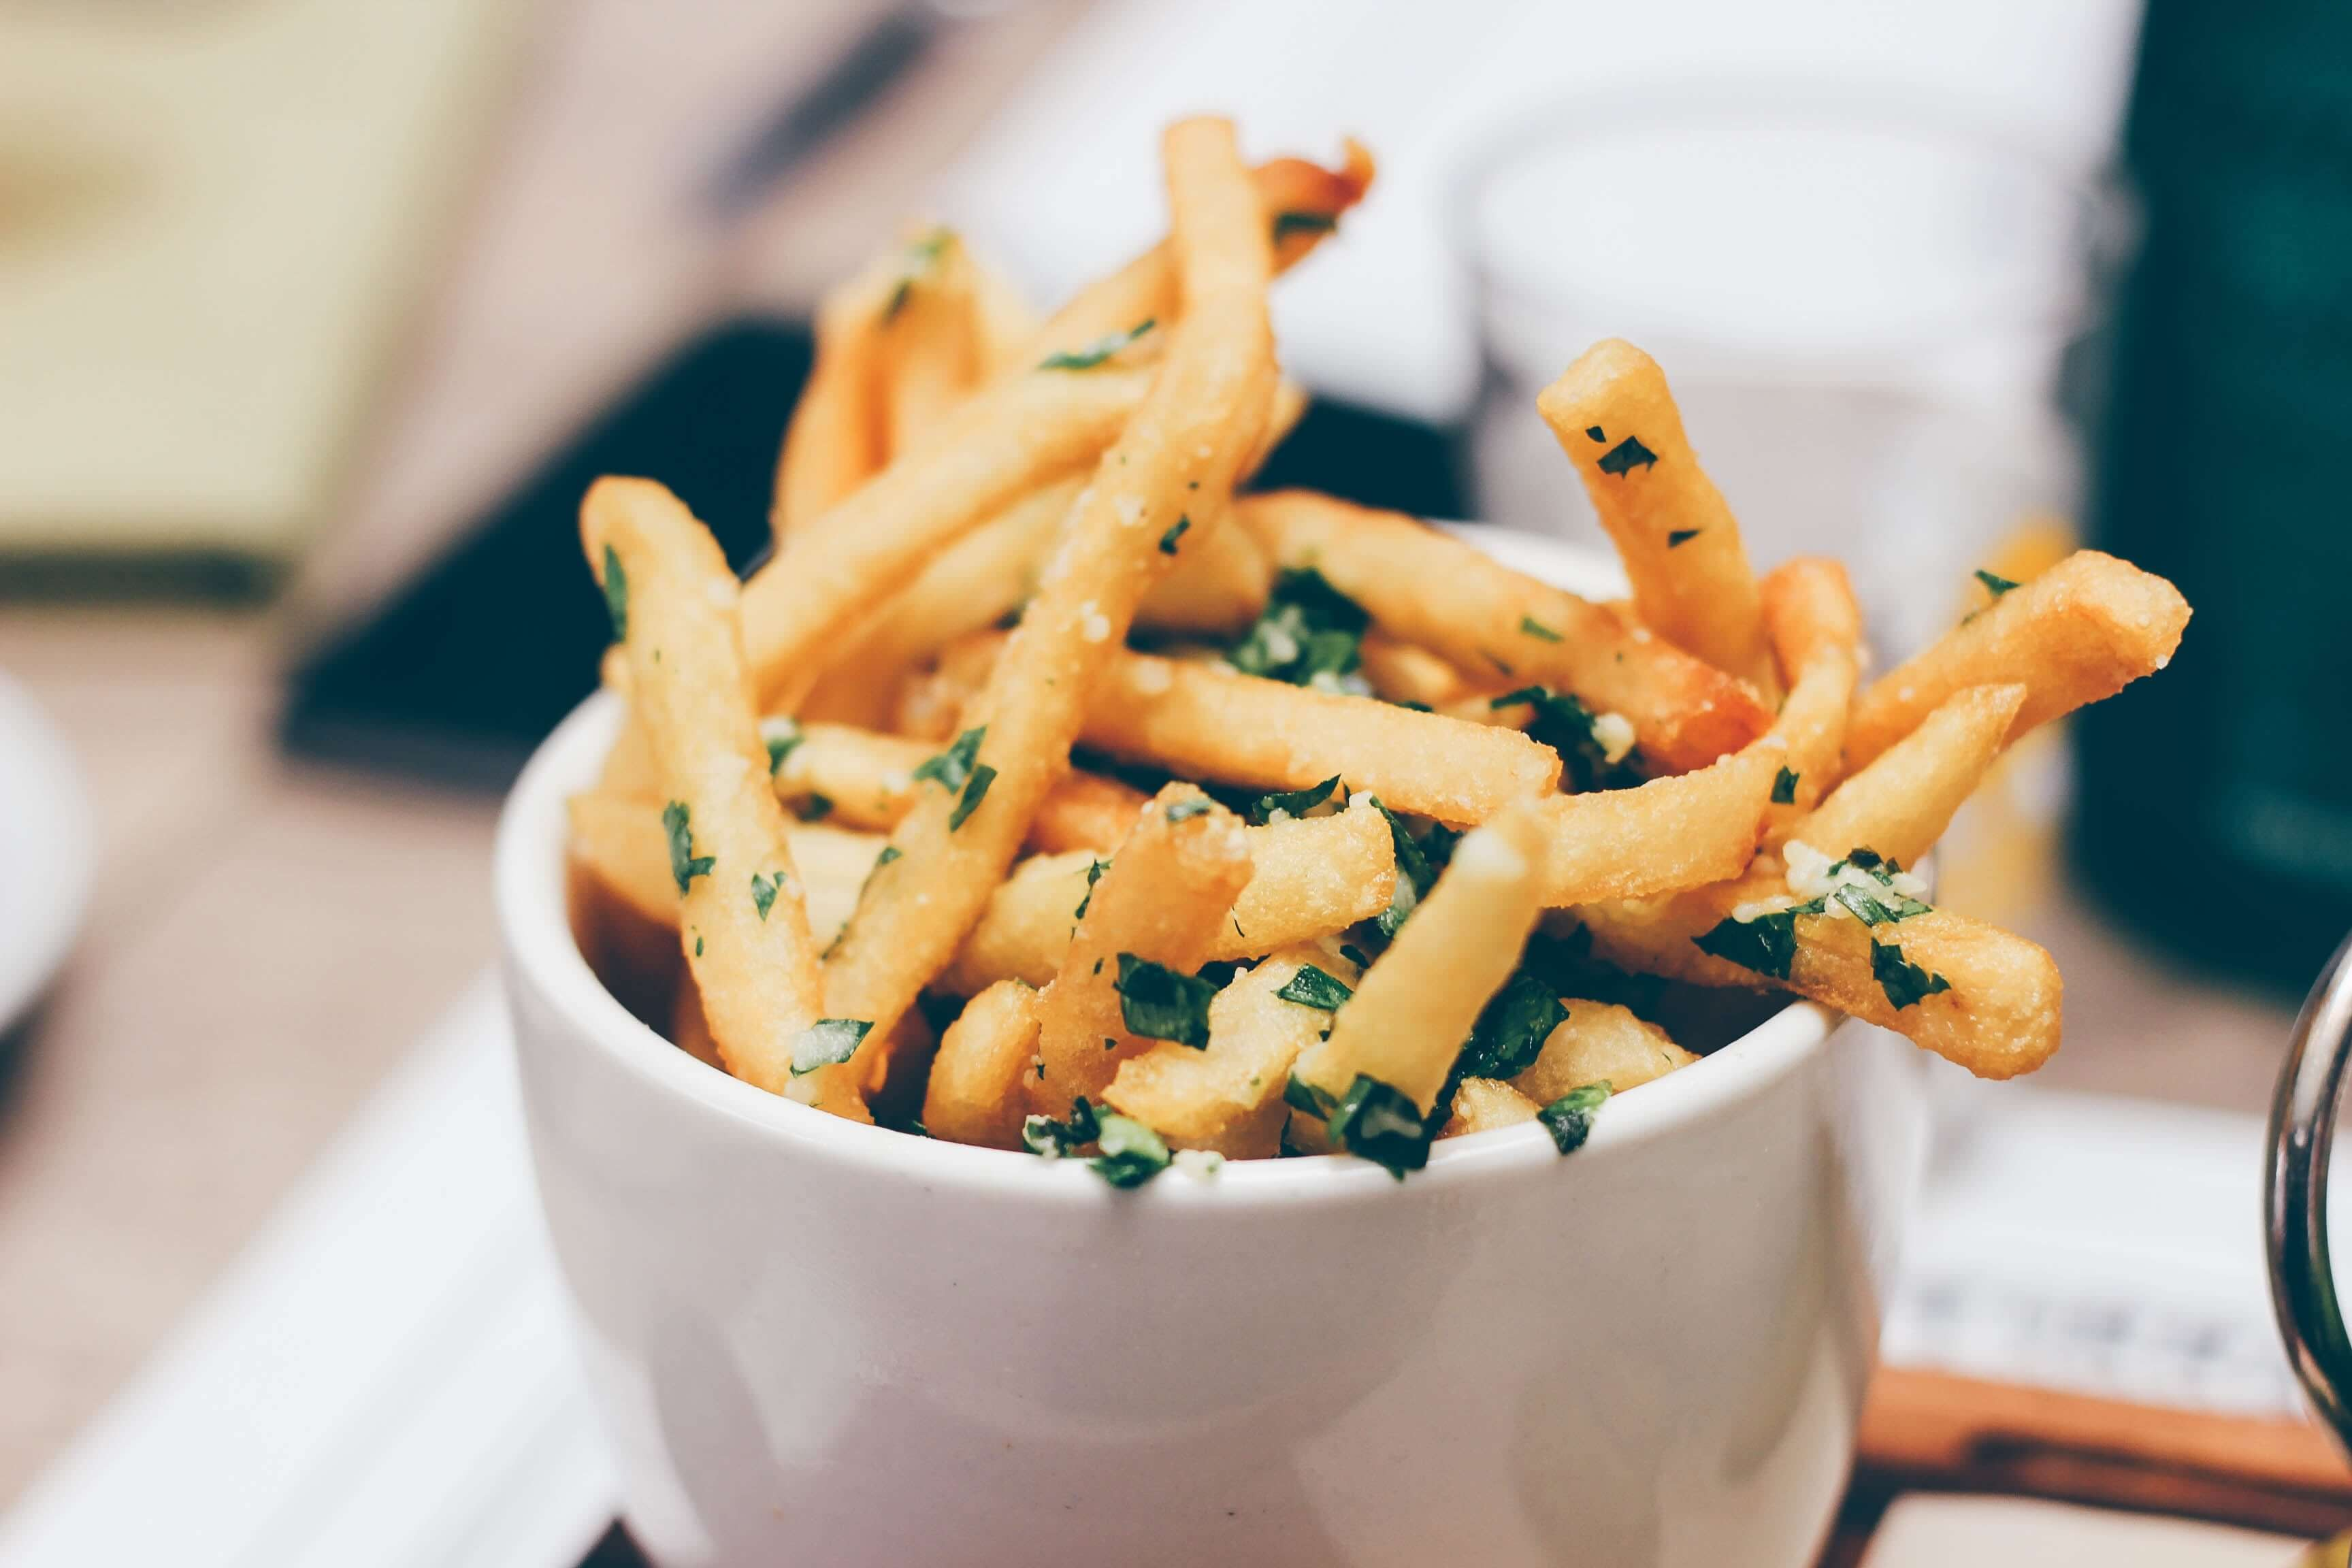 Close up of hot chips. Photo by Stephanie McCabe on Unsplash